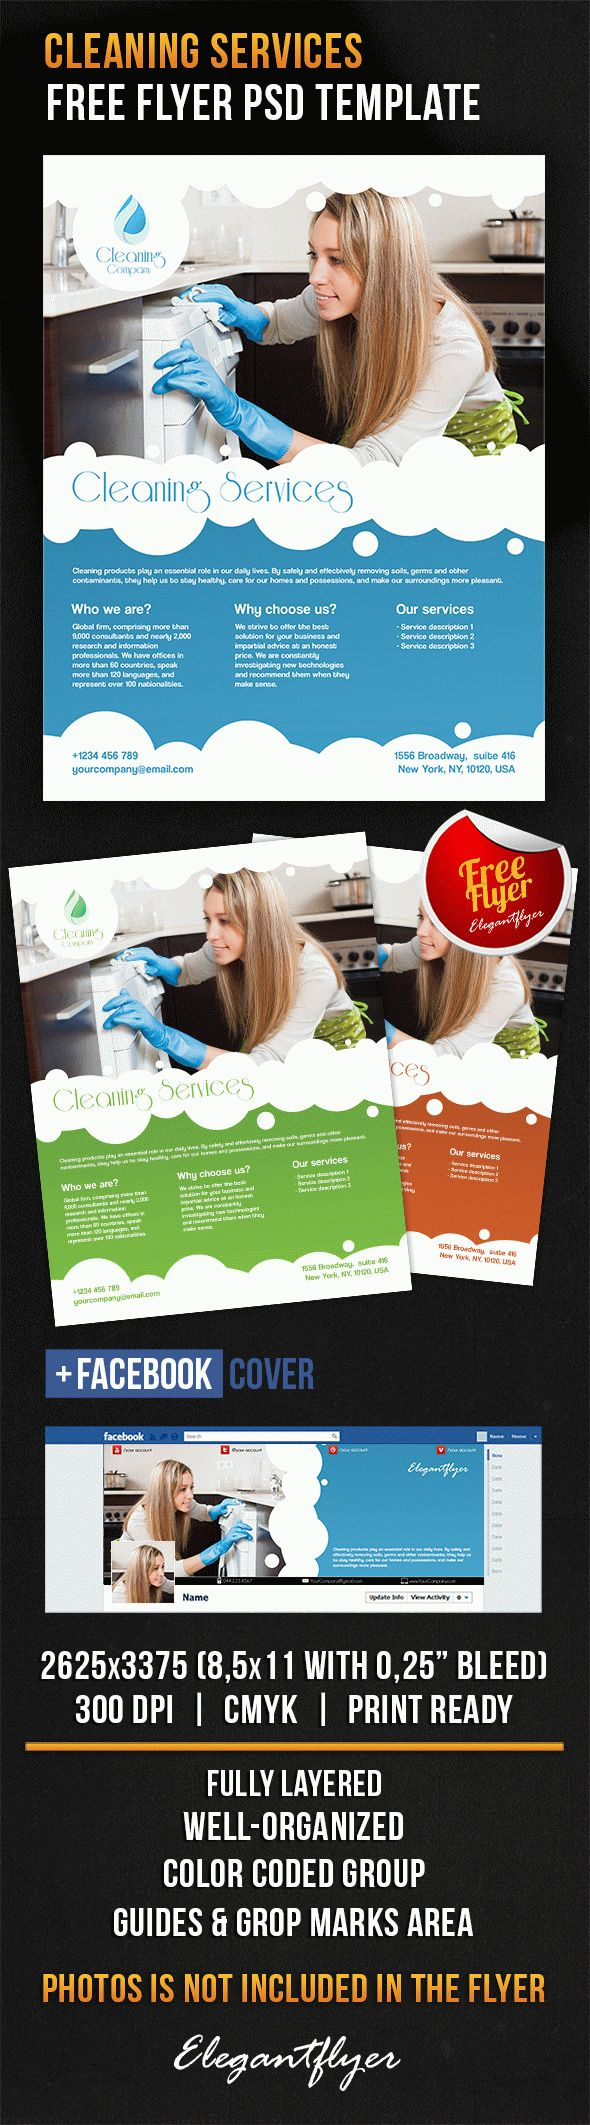 cleaning services flyer psd template facebook cover by cleaning services flyer psd template facebook cover